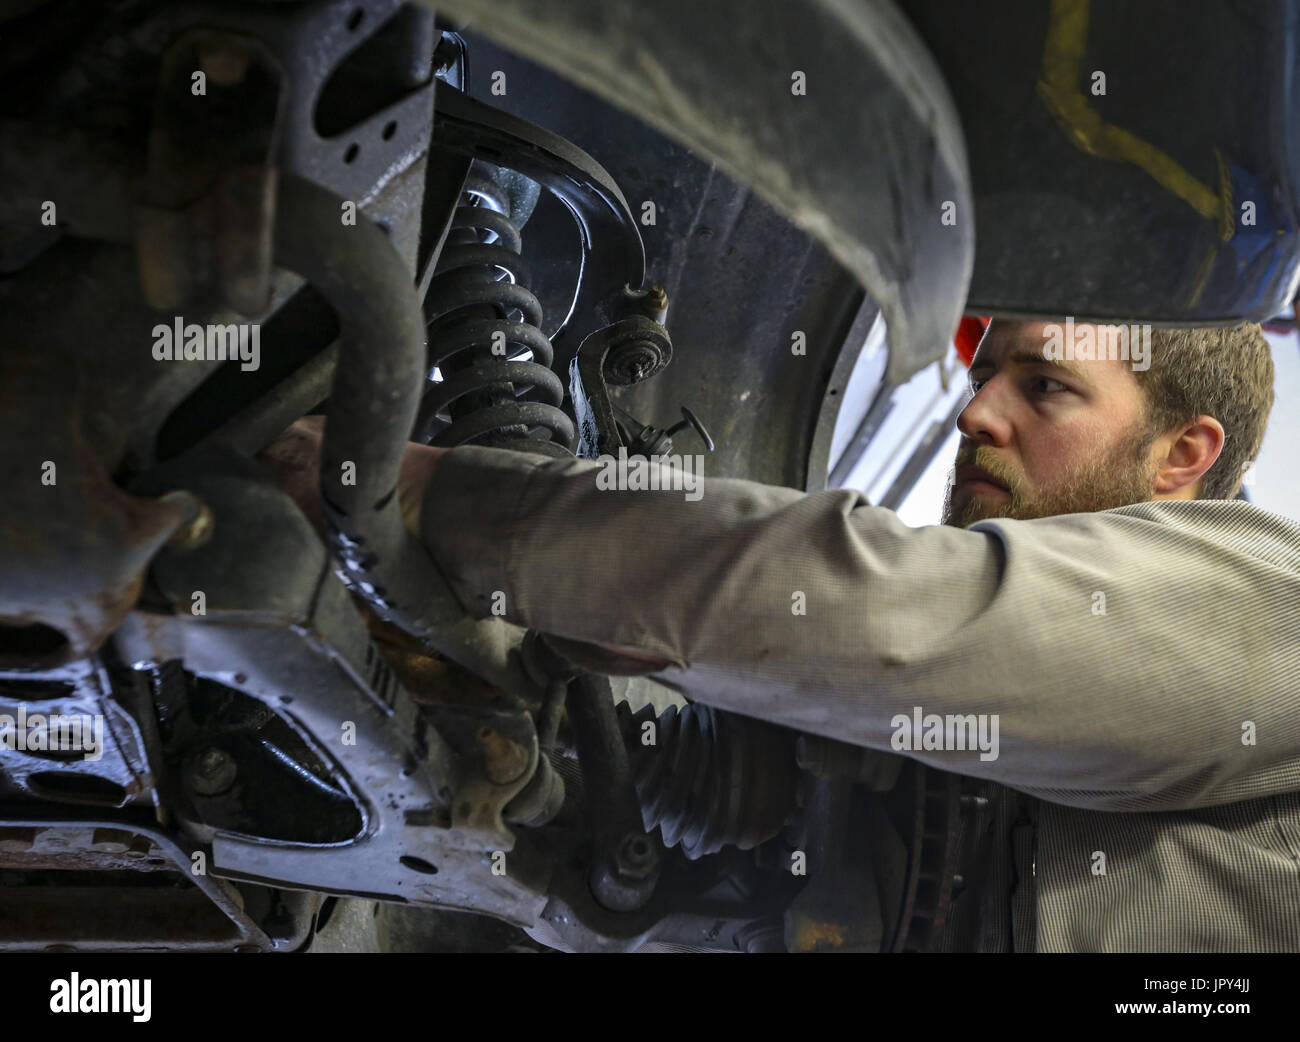 Davenport, Iowa, USA. 19th Jan, 2017. Manager Bill Dittmer reaches in through the suspension assembly of a Honda Pilot to access the thermostat at Dittmer's Service in Davenport on Thursday, January 19, 2017. In January of 2016, the family owned full-service gas station parted ways with Shell Oil Company. The four-pump station lost its big oil affiliation this when the Dittmer brothers refused to conform to the multinational oil and gasoline company's expectations. Credit: Andy Abeyta/Quad-City Times/ZUMA Wire/Alamy Live News - Stock Image